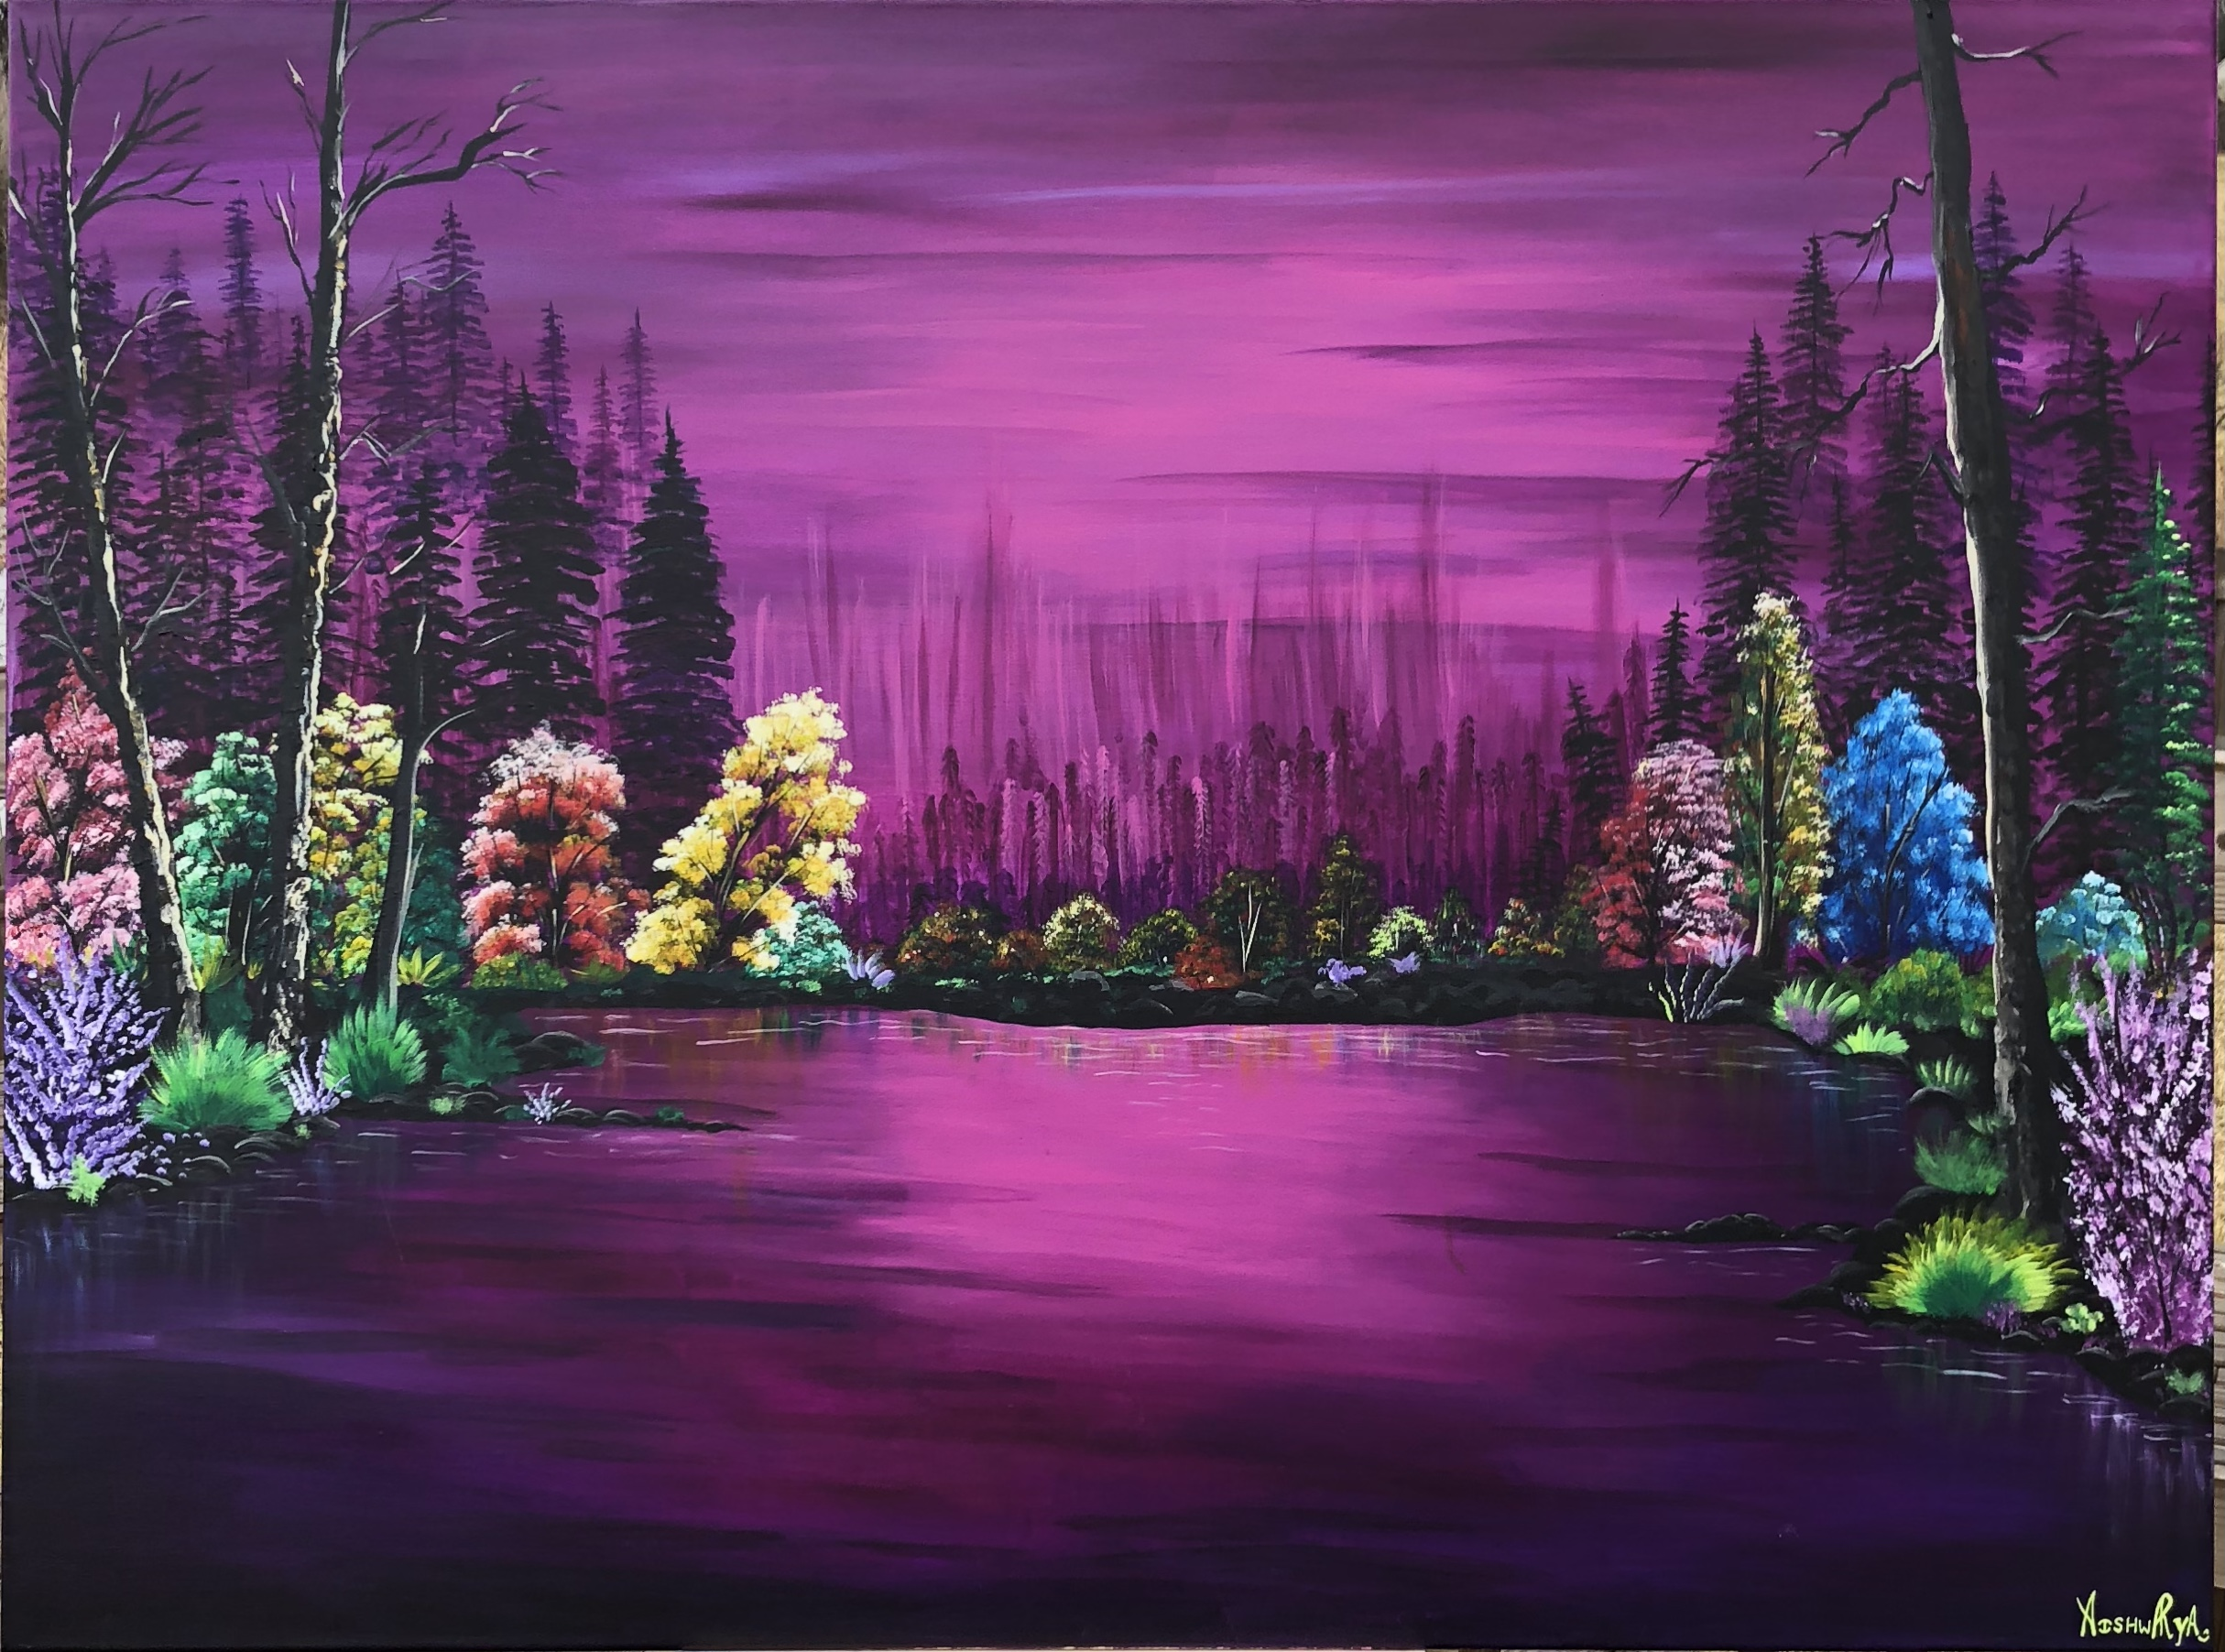 A painting of an outdoor landscape with a vibrant purple sky and ground with a row of multi-colored trees (greens, blues, yellows, purples, reds) at the horizon line in the middle of image that is receding towards the center from both left and right edges of the painting. The center of the painting is the most vibrant warm purple.